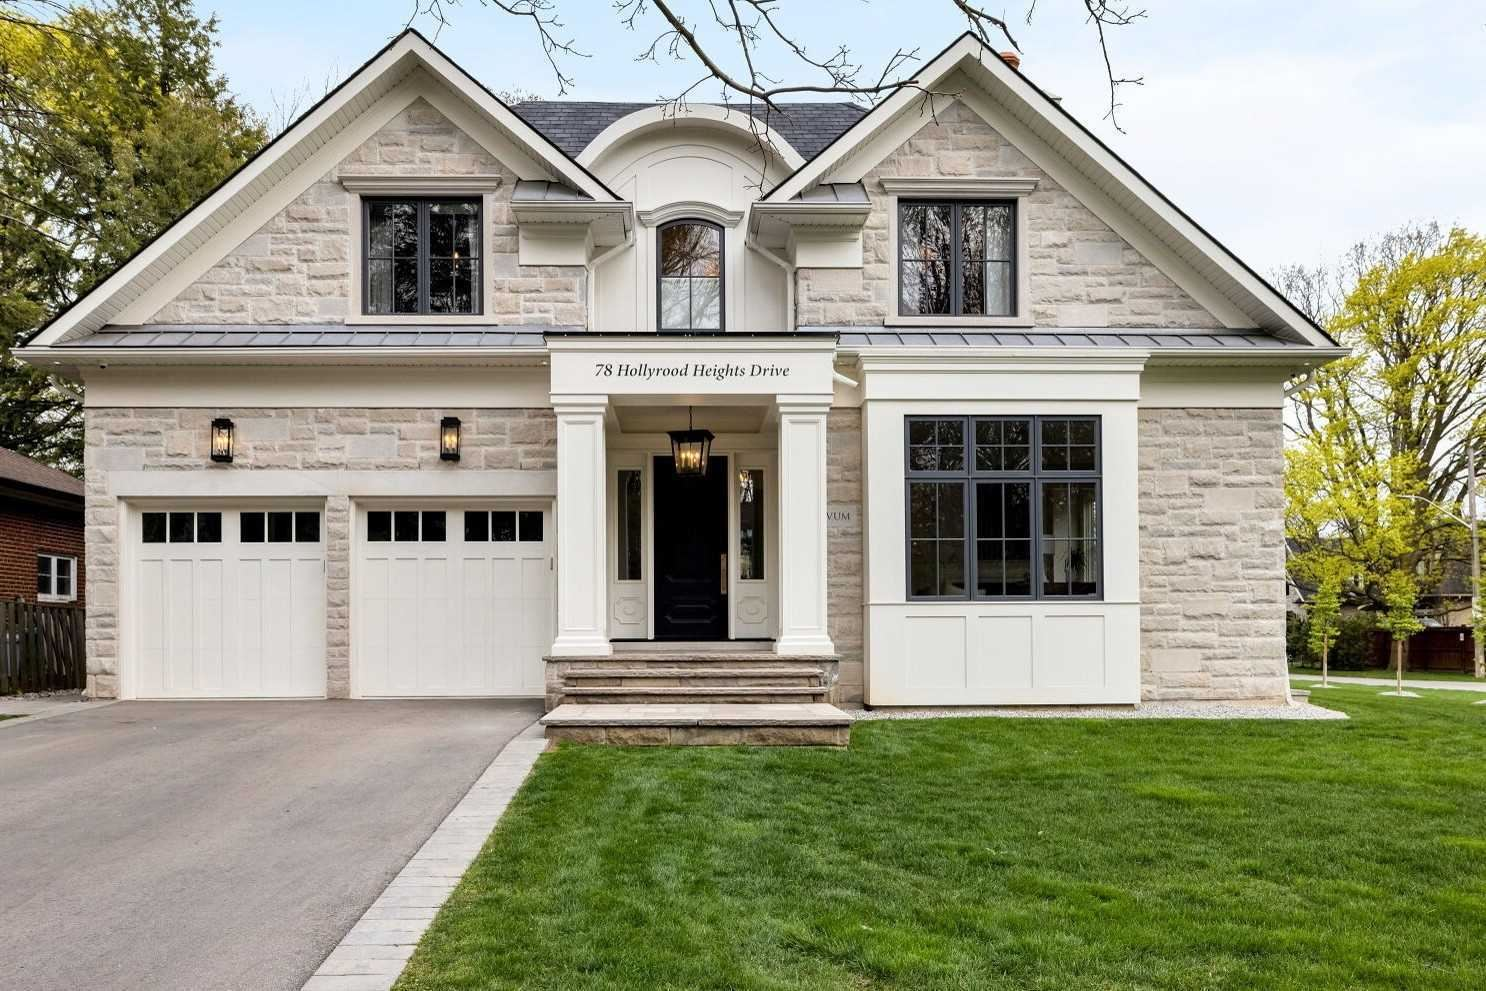 78 Hollyrood Heights Dr, Mississauga, ON L5G2H4 - MLS#: W5249004